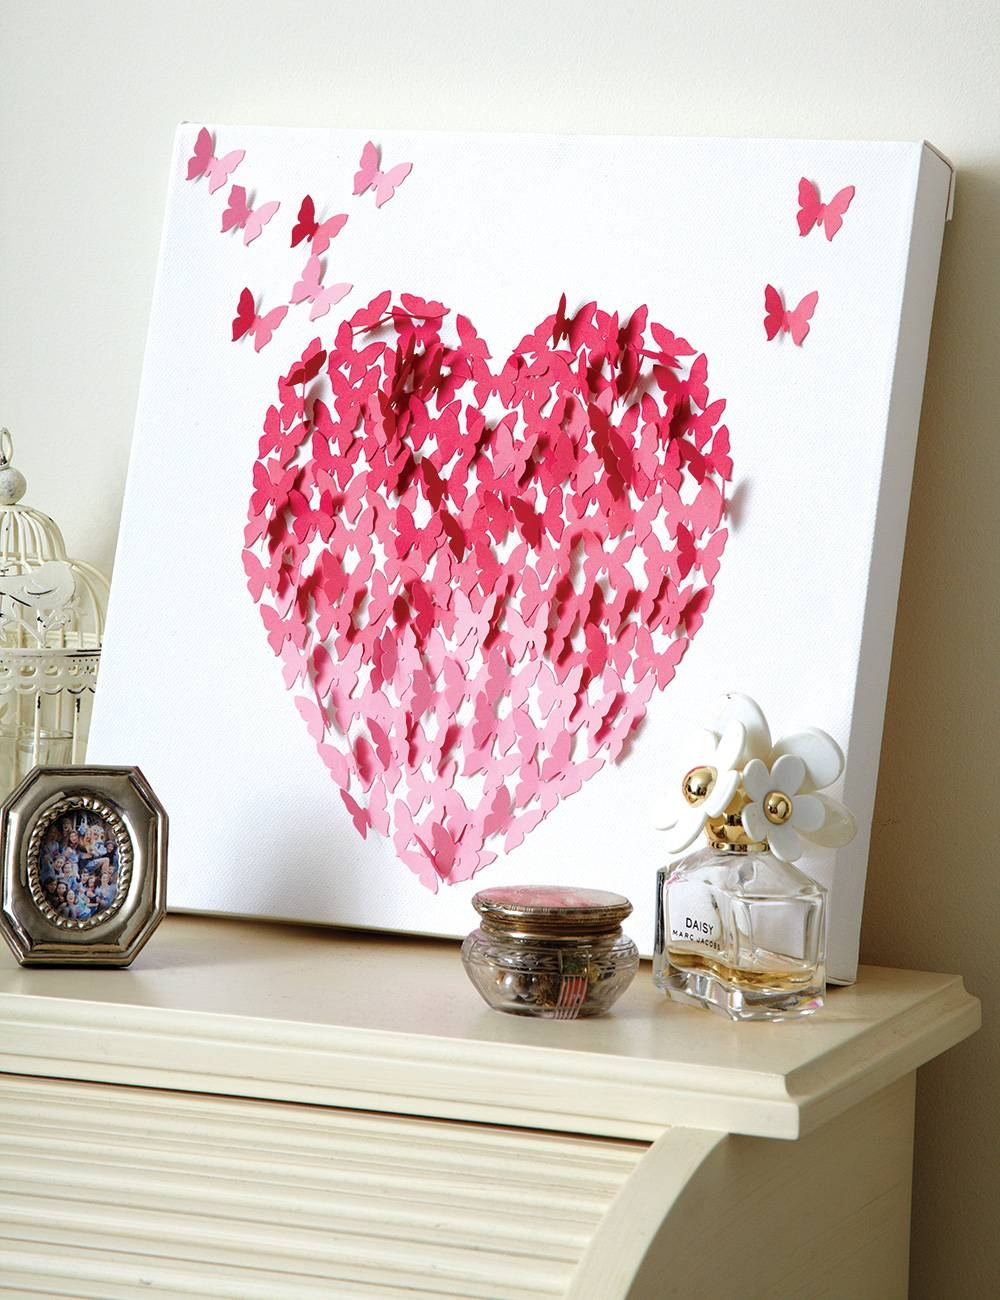 Make Love Heart Canvas Wall Art For Valentine's Day Regarding Most Recently Released Heart 3D Wall Art (View 13 of 20)